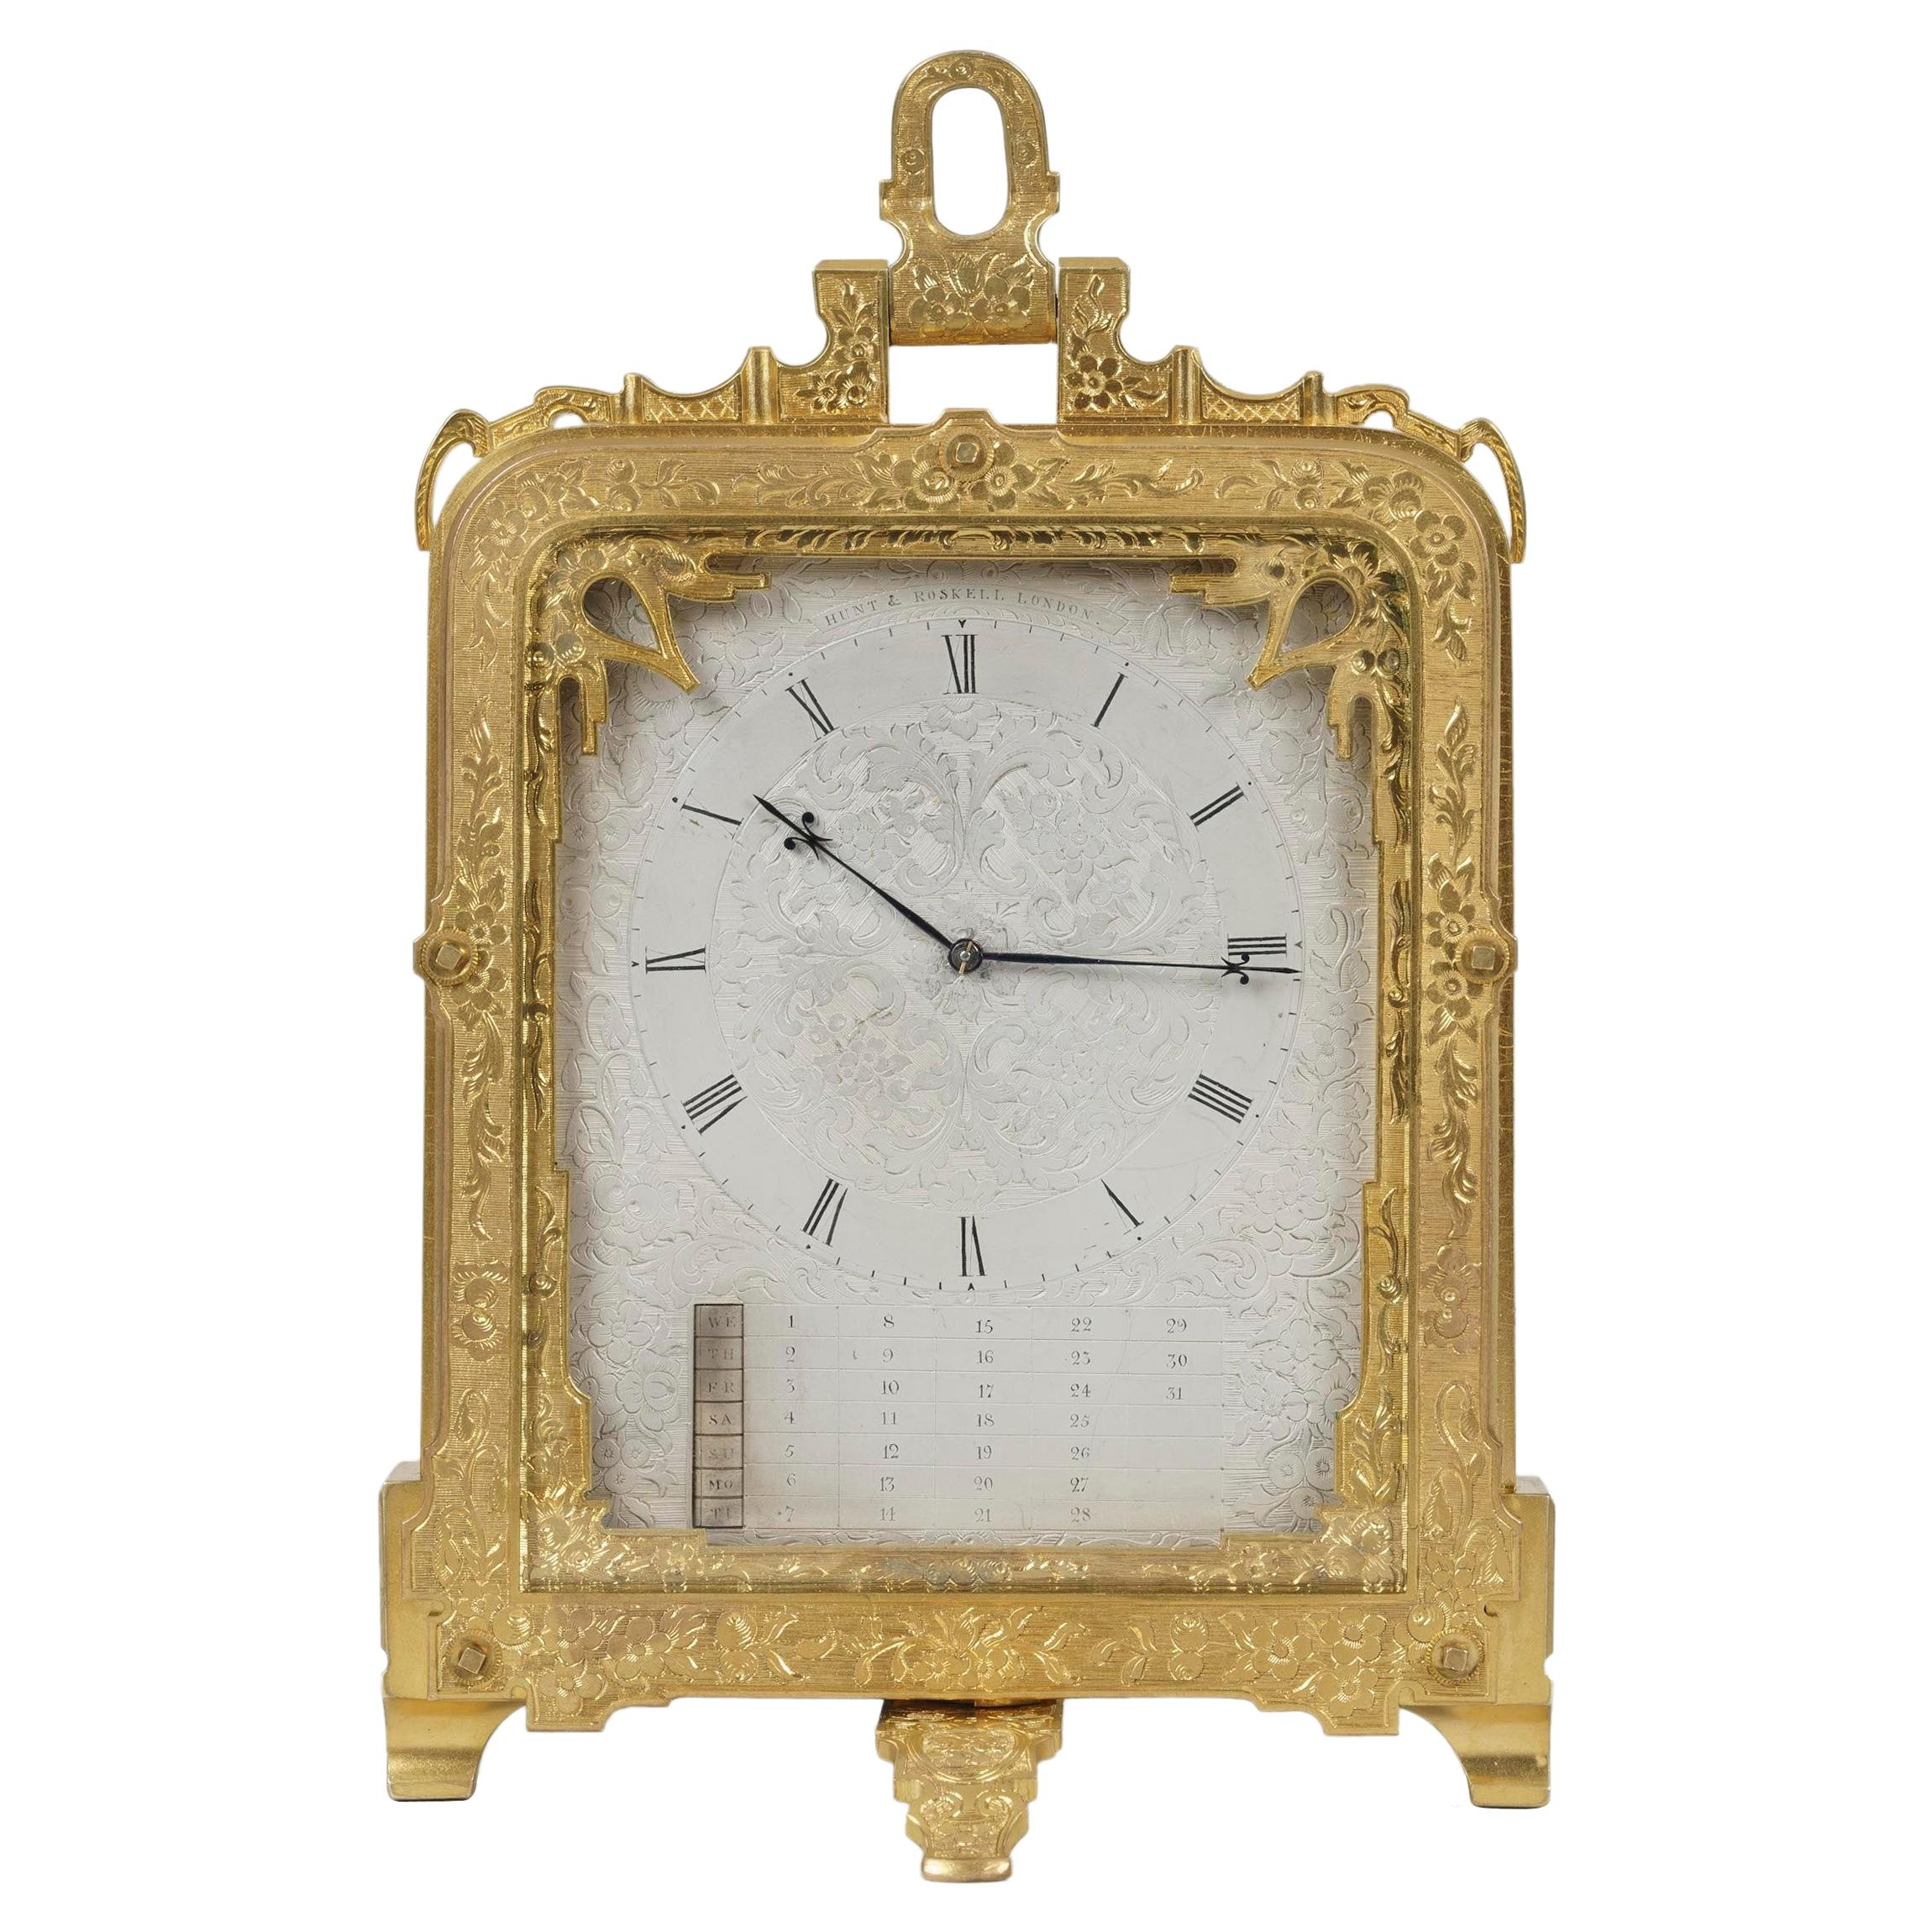 Rare Antique Brass Engraved Strut Clock by Thomas Cole